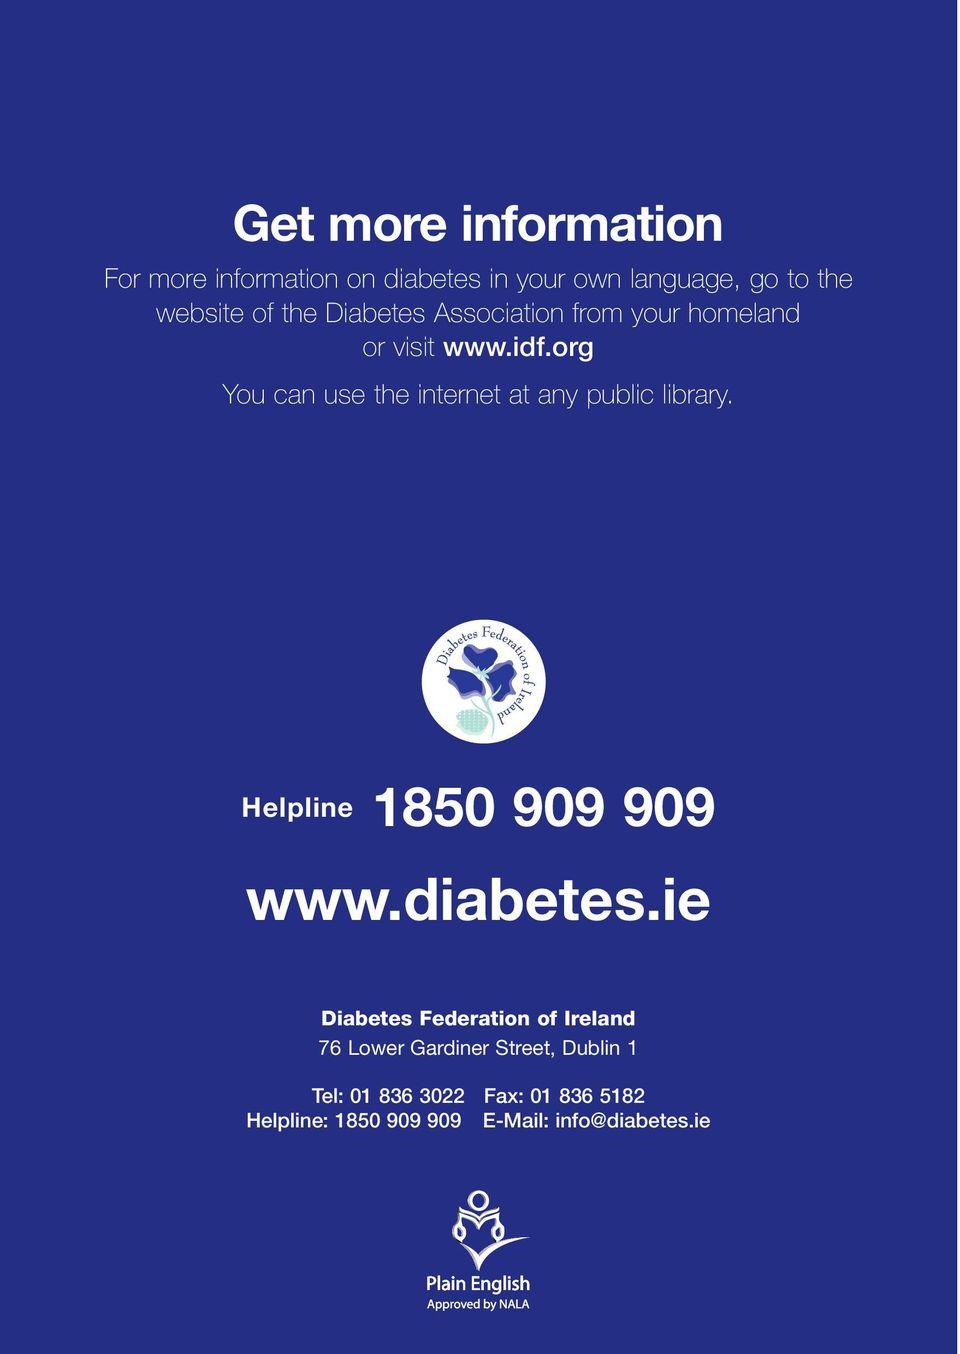 org You can use the internet at any public library. Helpline 1850 909 909 www.diabetes.